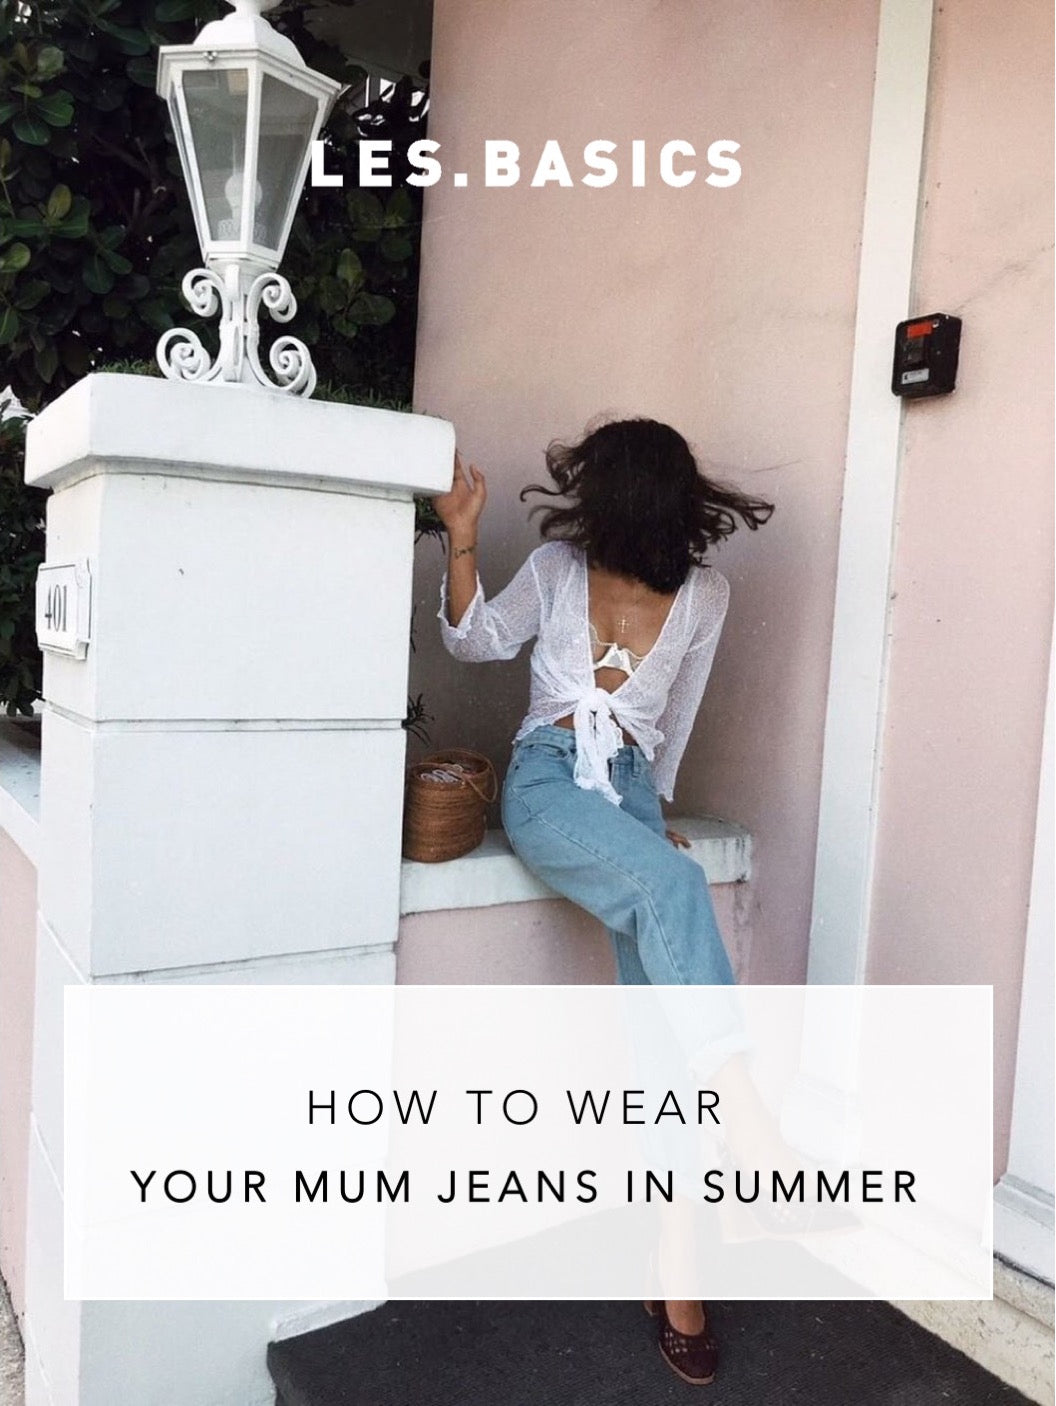 How To Wear Your Mom Jeans In Summer